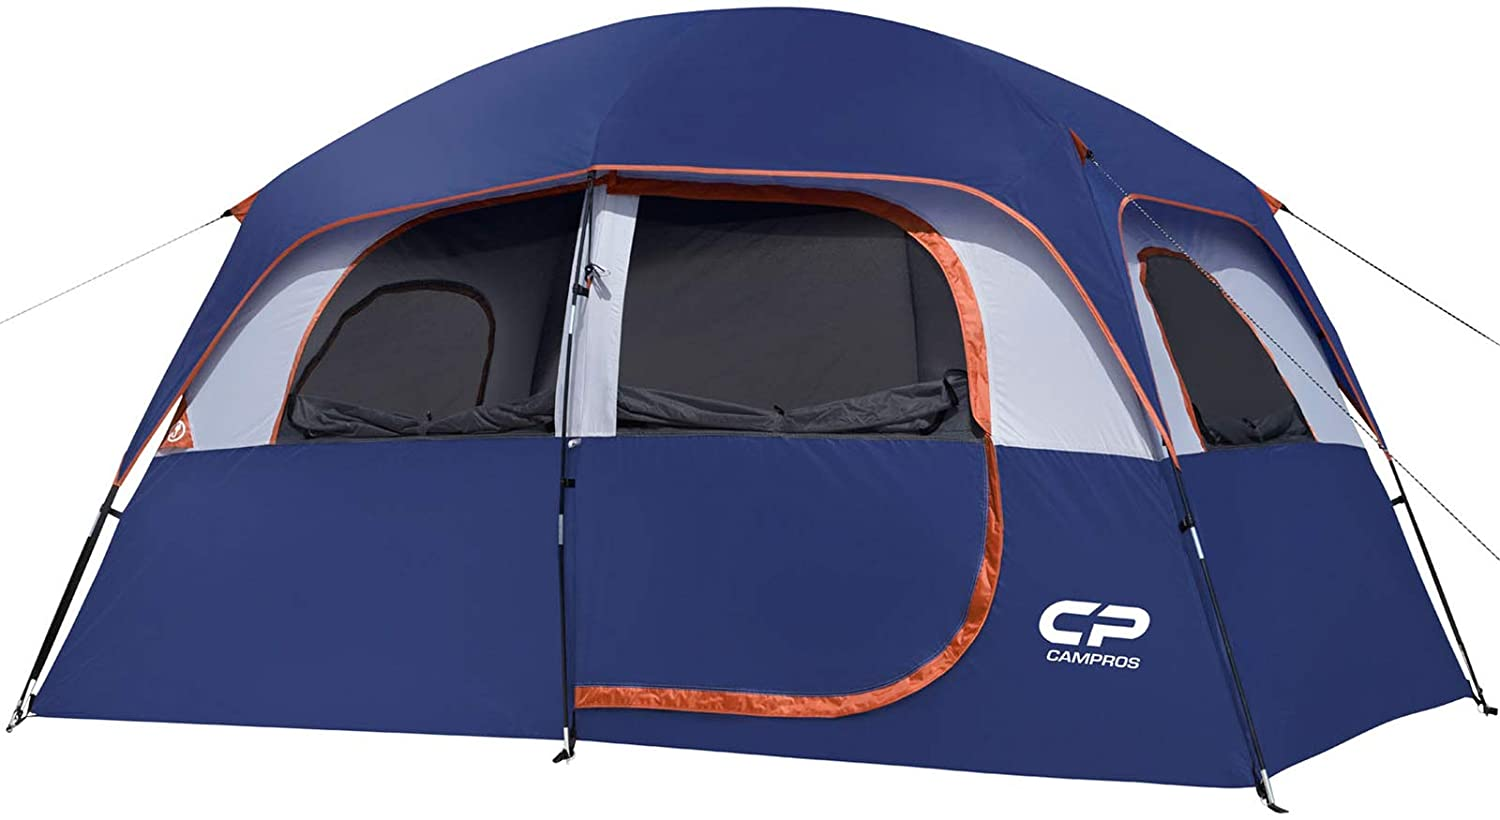 CAMPROS Tent 6 Person Camping Tents